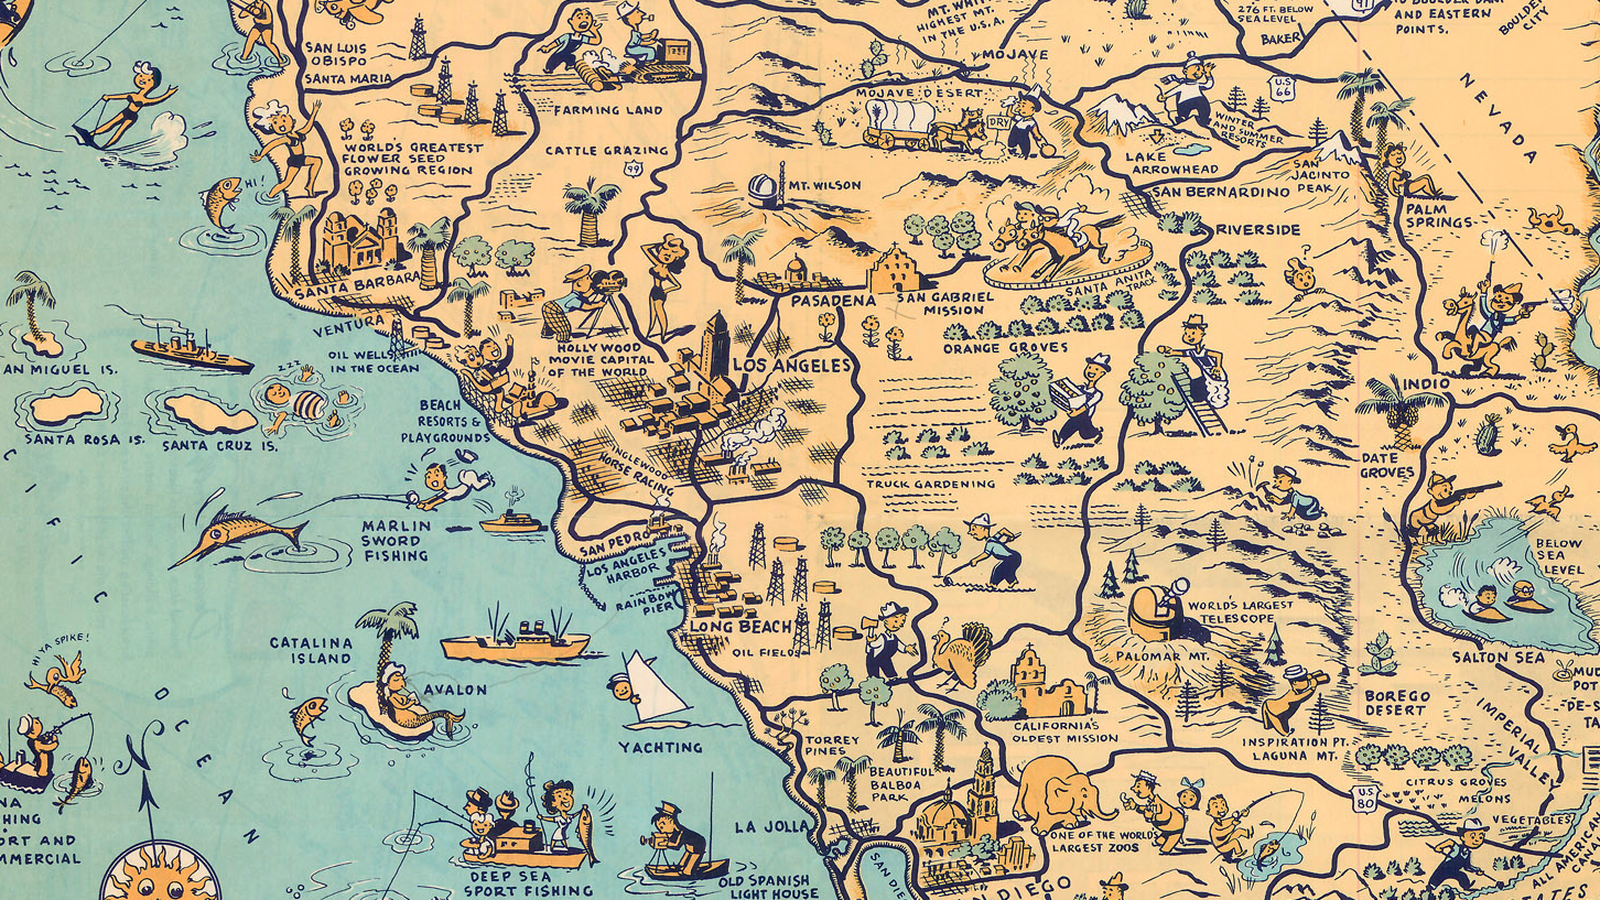 The Golden State Of California - Goaltaca california the golden state illustrated map by lowell e jones